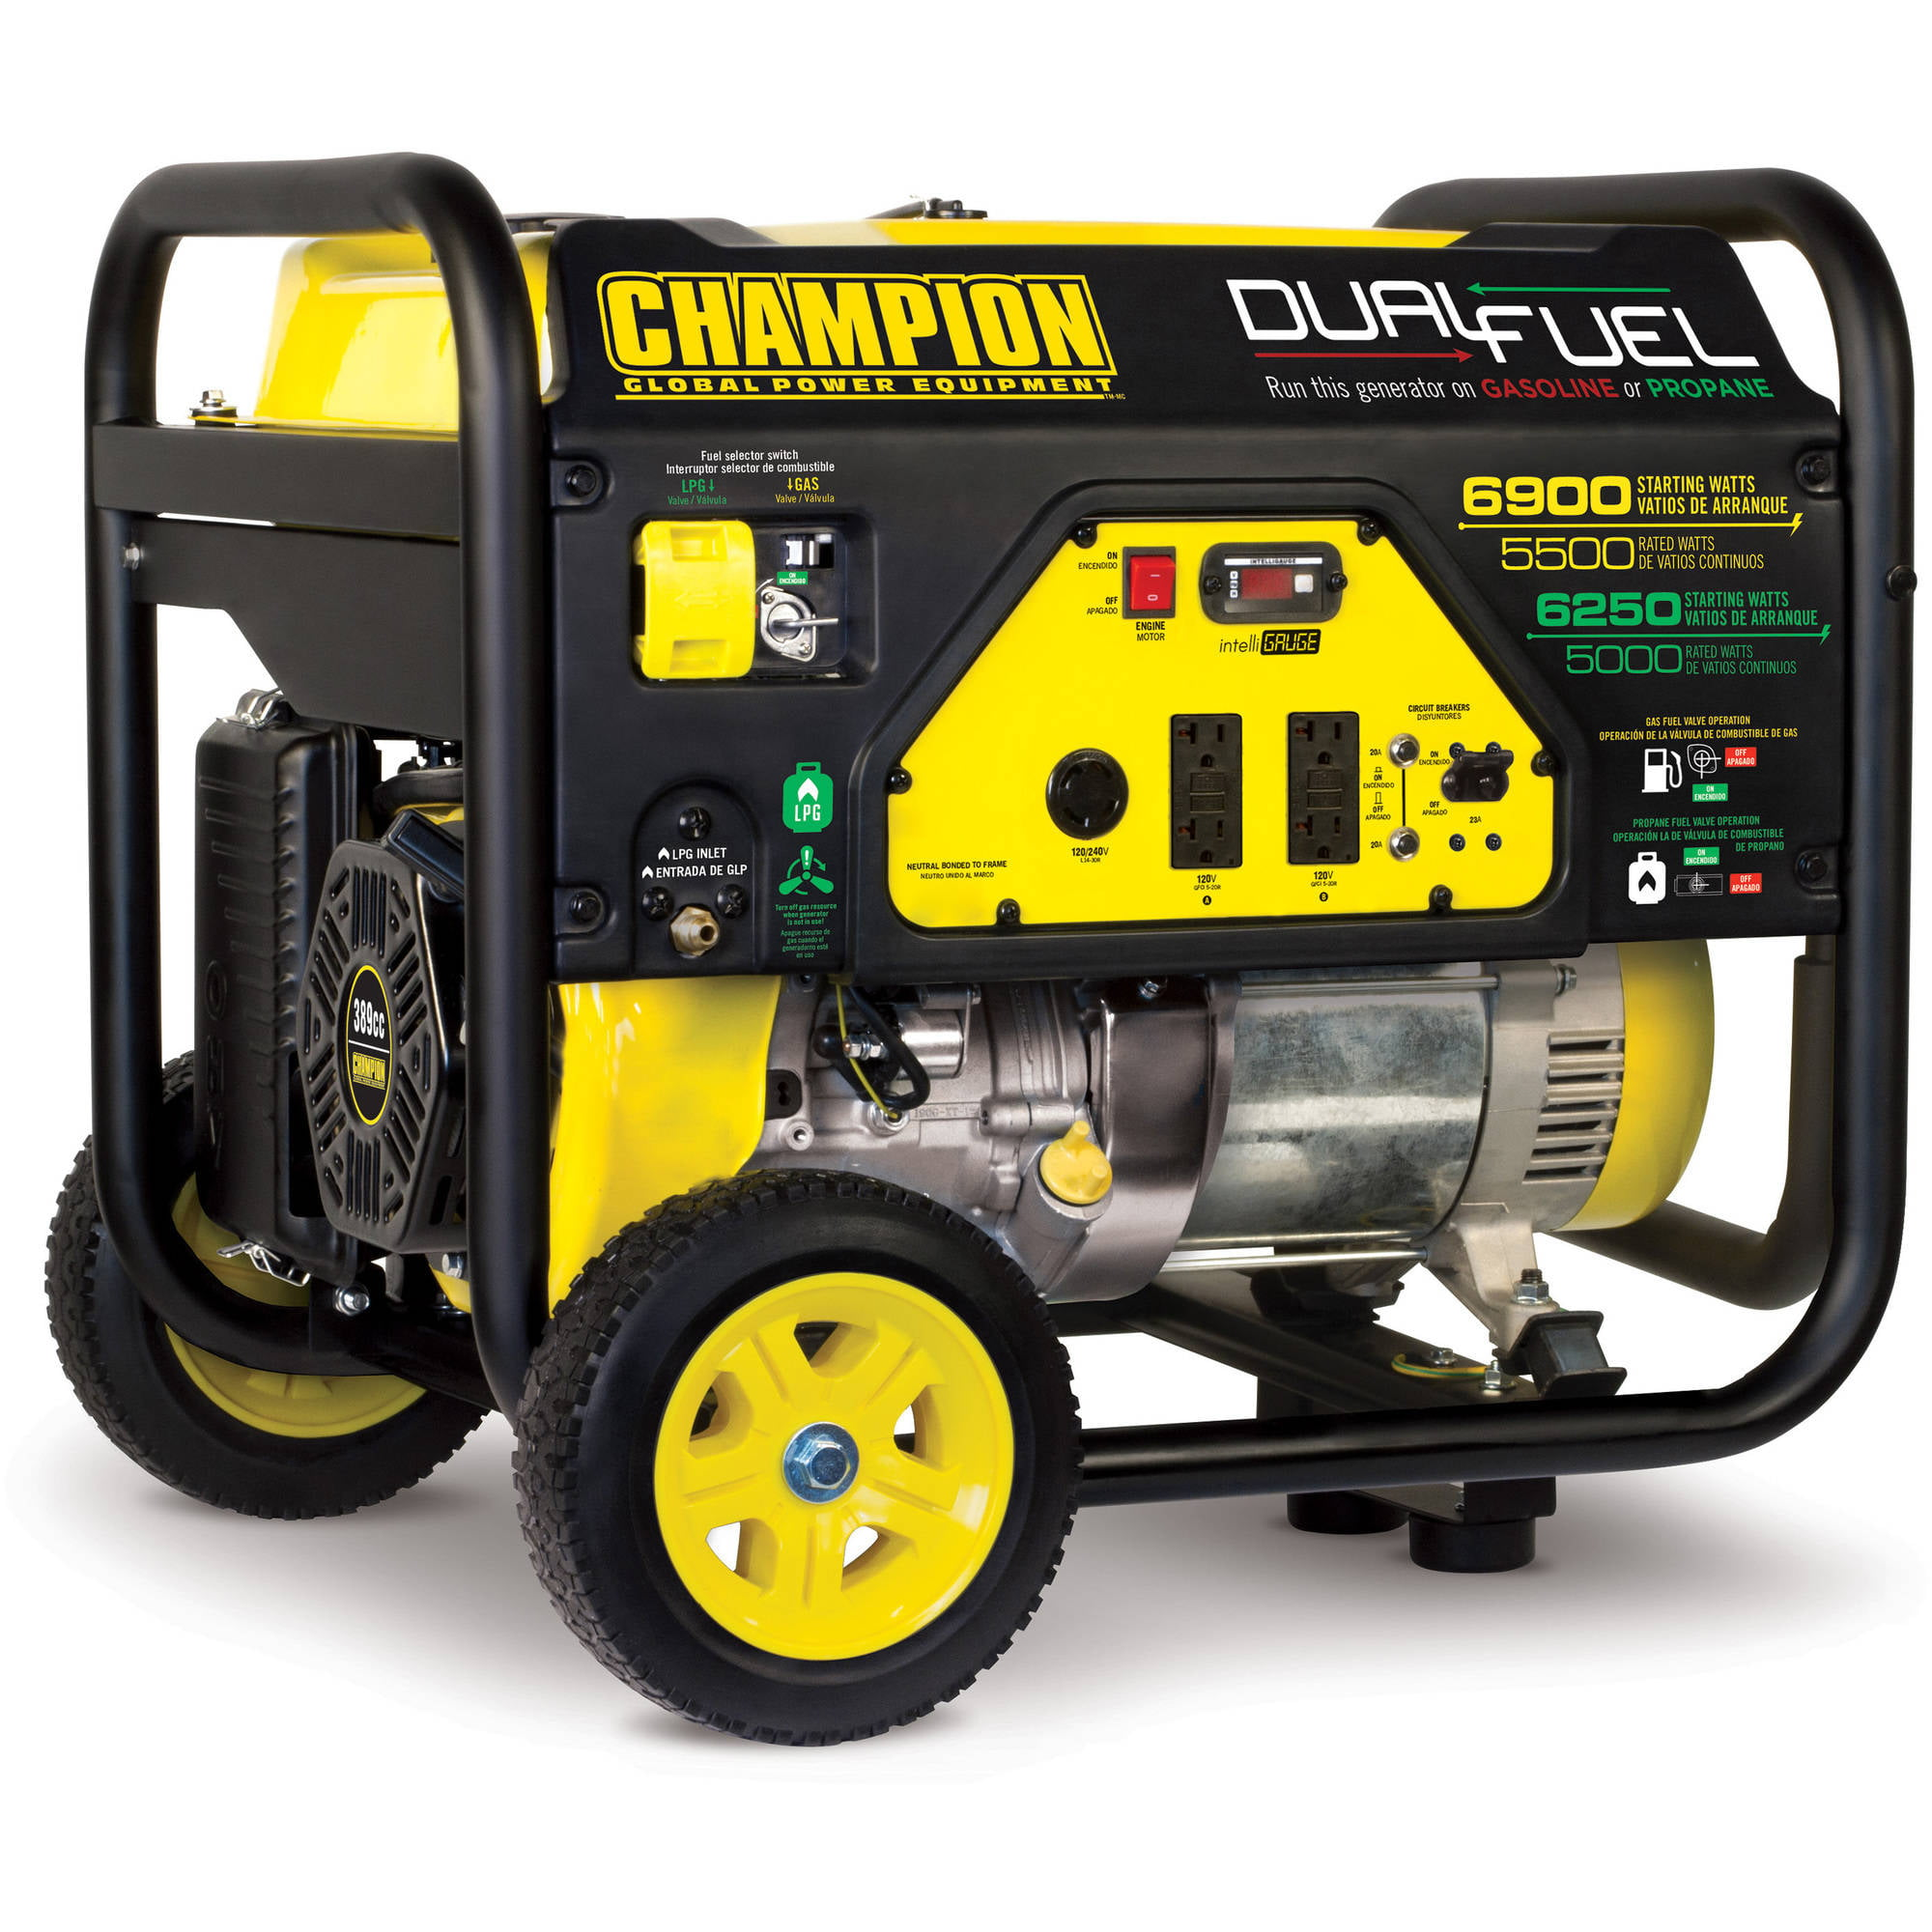 Lifan Generators 3600 Wiring Diagram Simple Guide About I5 Engine Chinese Portable Generator Schematic